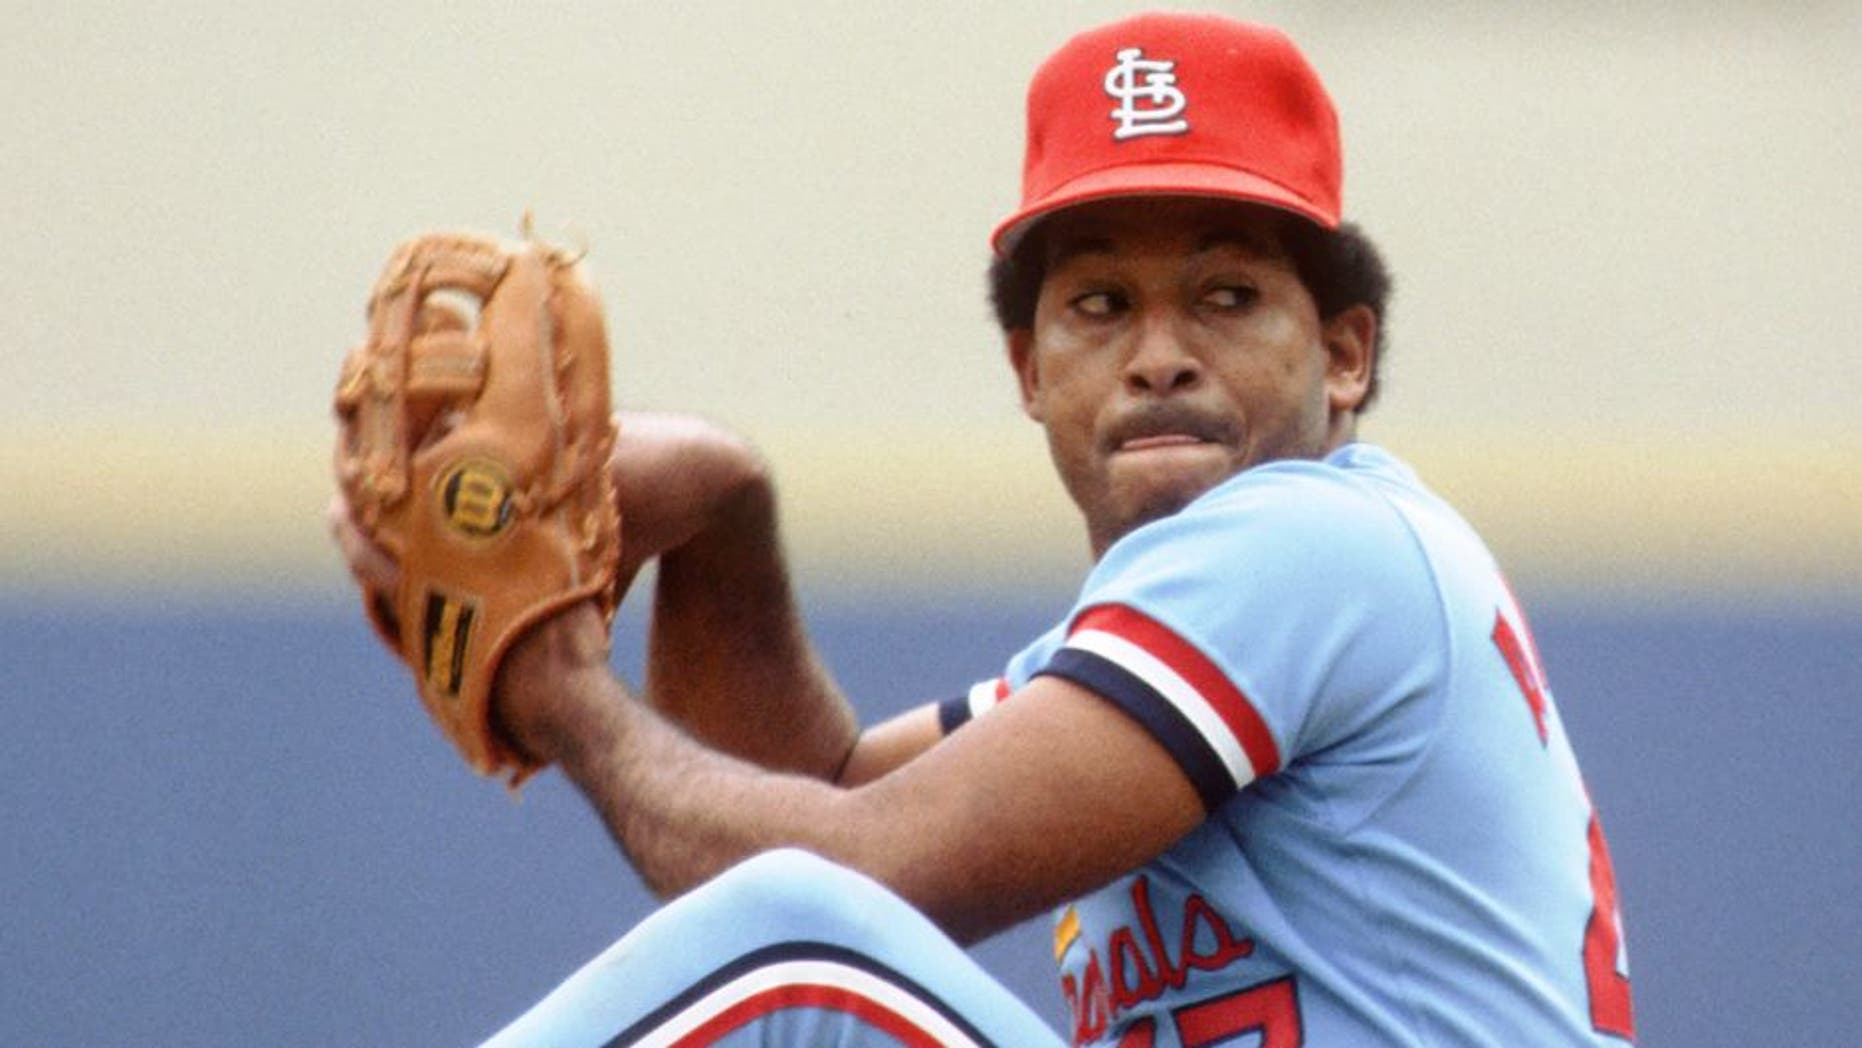 PITTSBURGH - CIRCA 1983: Joaquin Andujar #47 of the St. Louis Cardinals pitches against the Pittsburgh Pirates during a game at Three Rivers Stadium circa 1983 in Pittsburgh, Pennsylvania. (Photo by George Gojkovich/Getty Images) *** Local Caption *** Joaquin Andujar